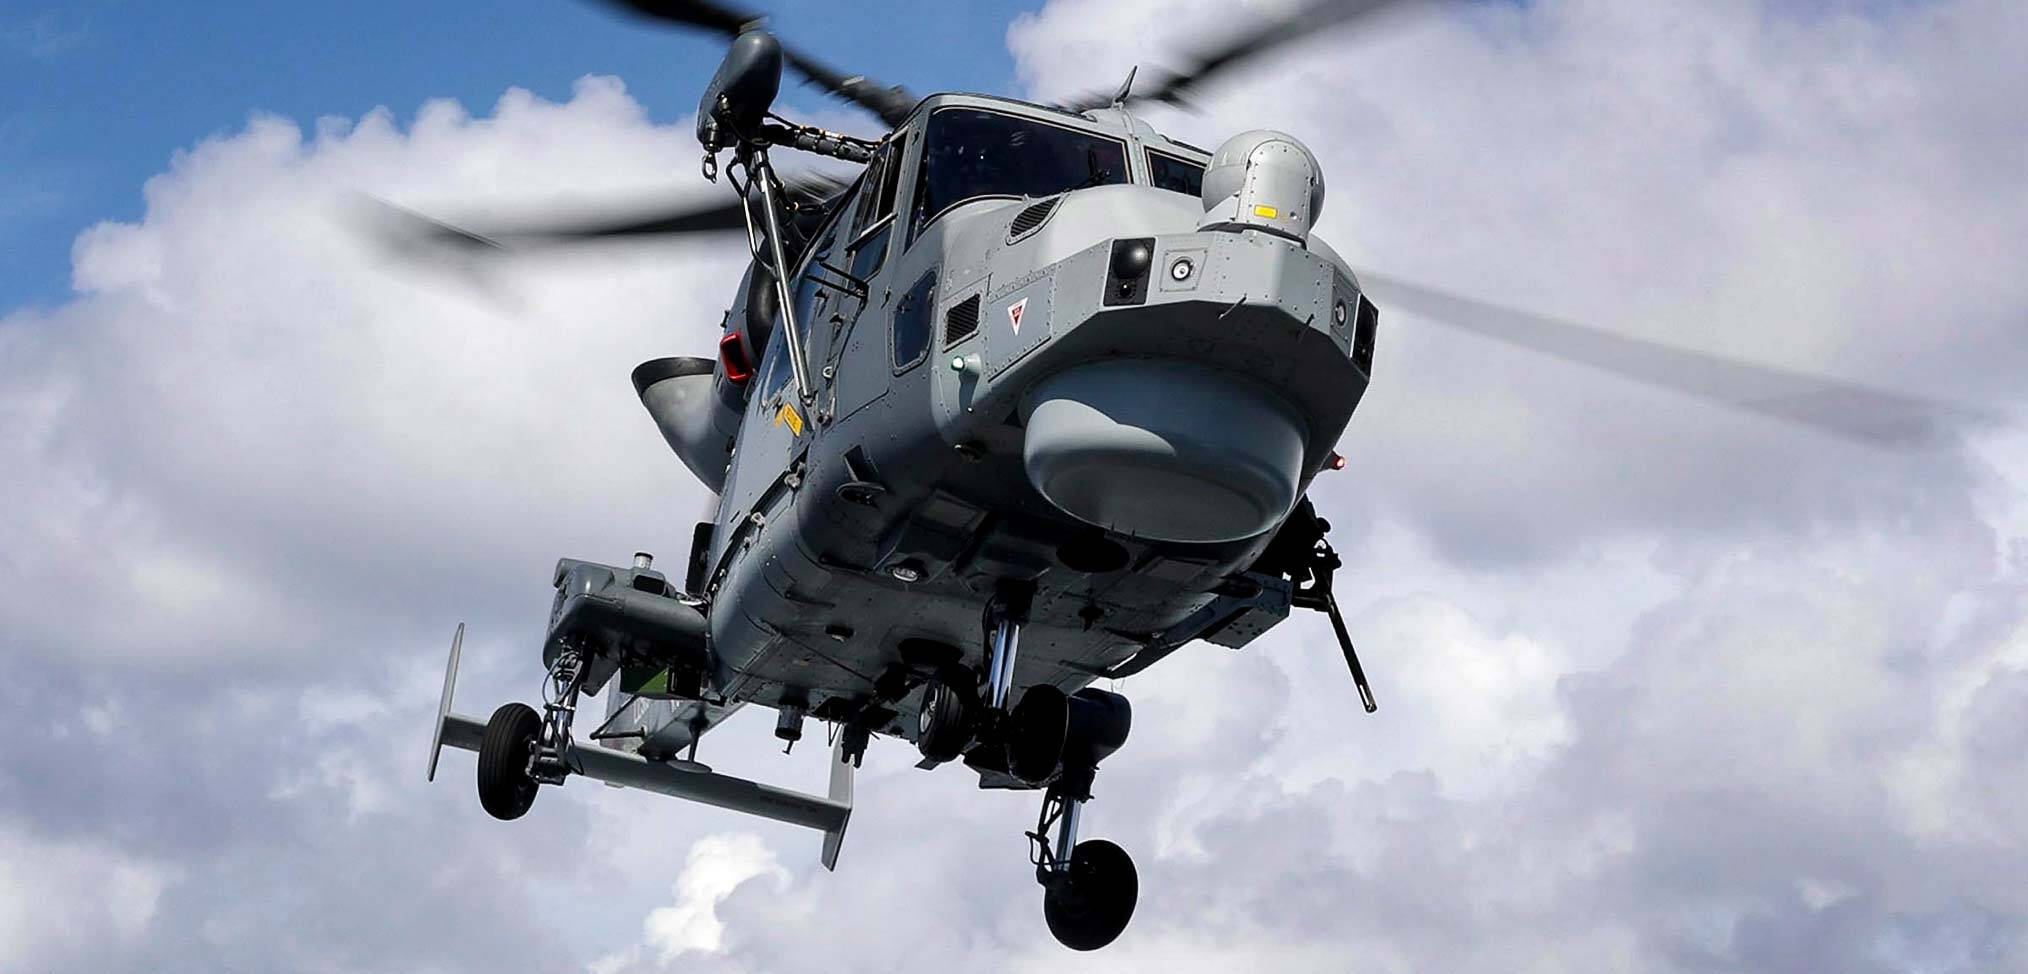 Axing the Royal Navy's Wildcat helicopters – still an option for the Integrated Review